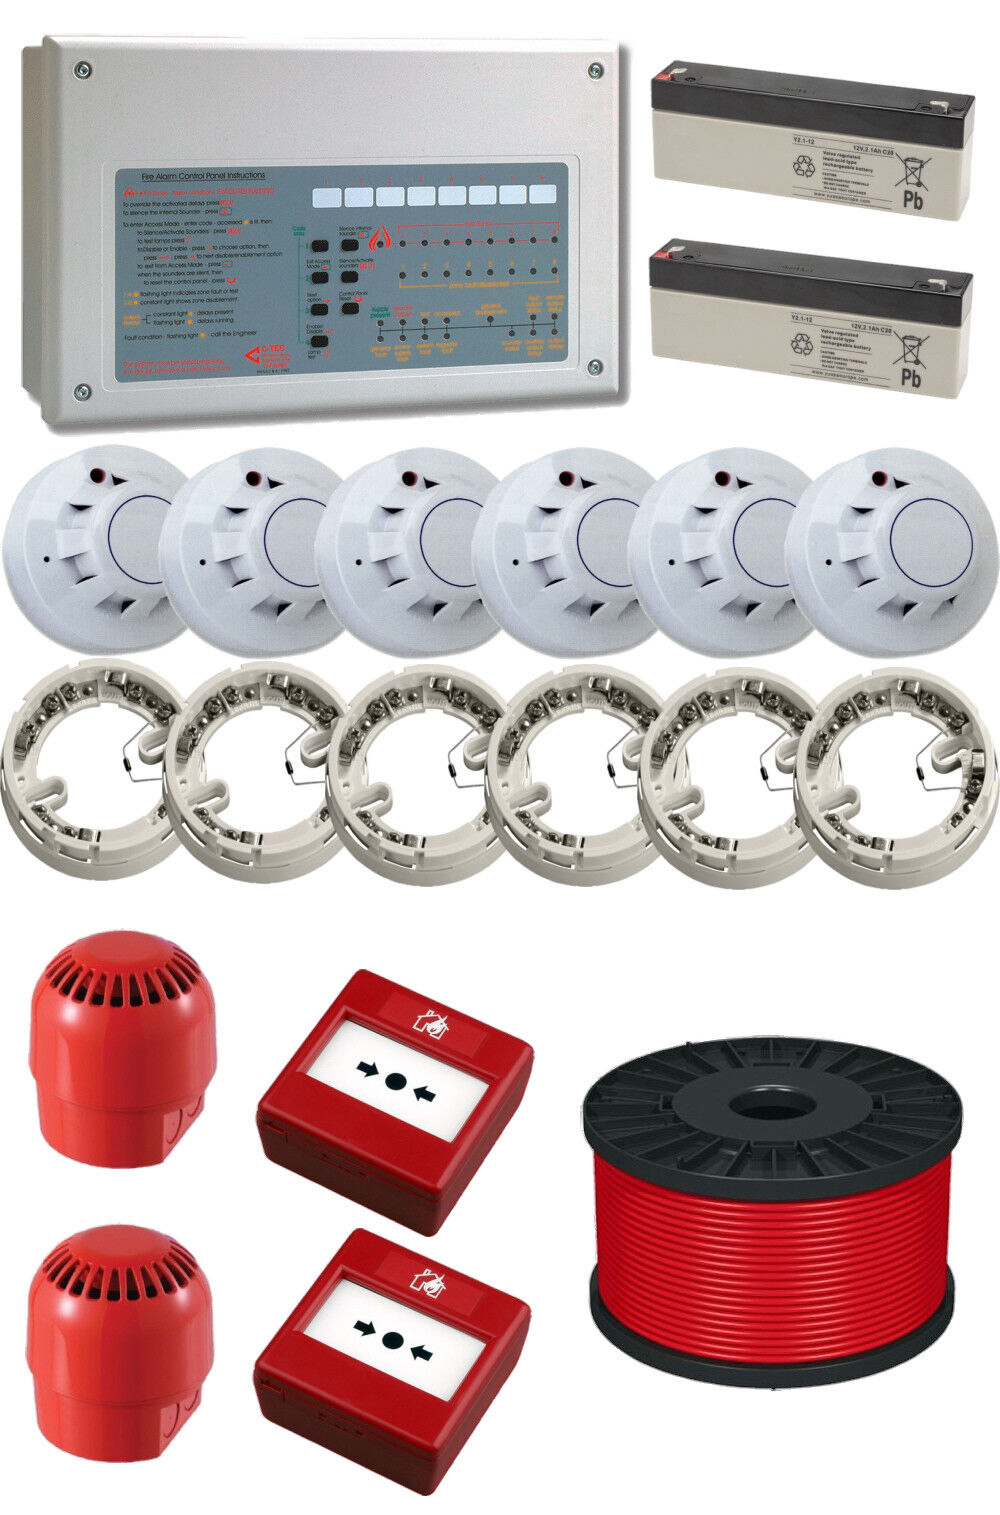 medium resolution of details about wired conventional 2 zone fire alarm kit with fireproof cable used by the pros